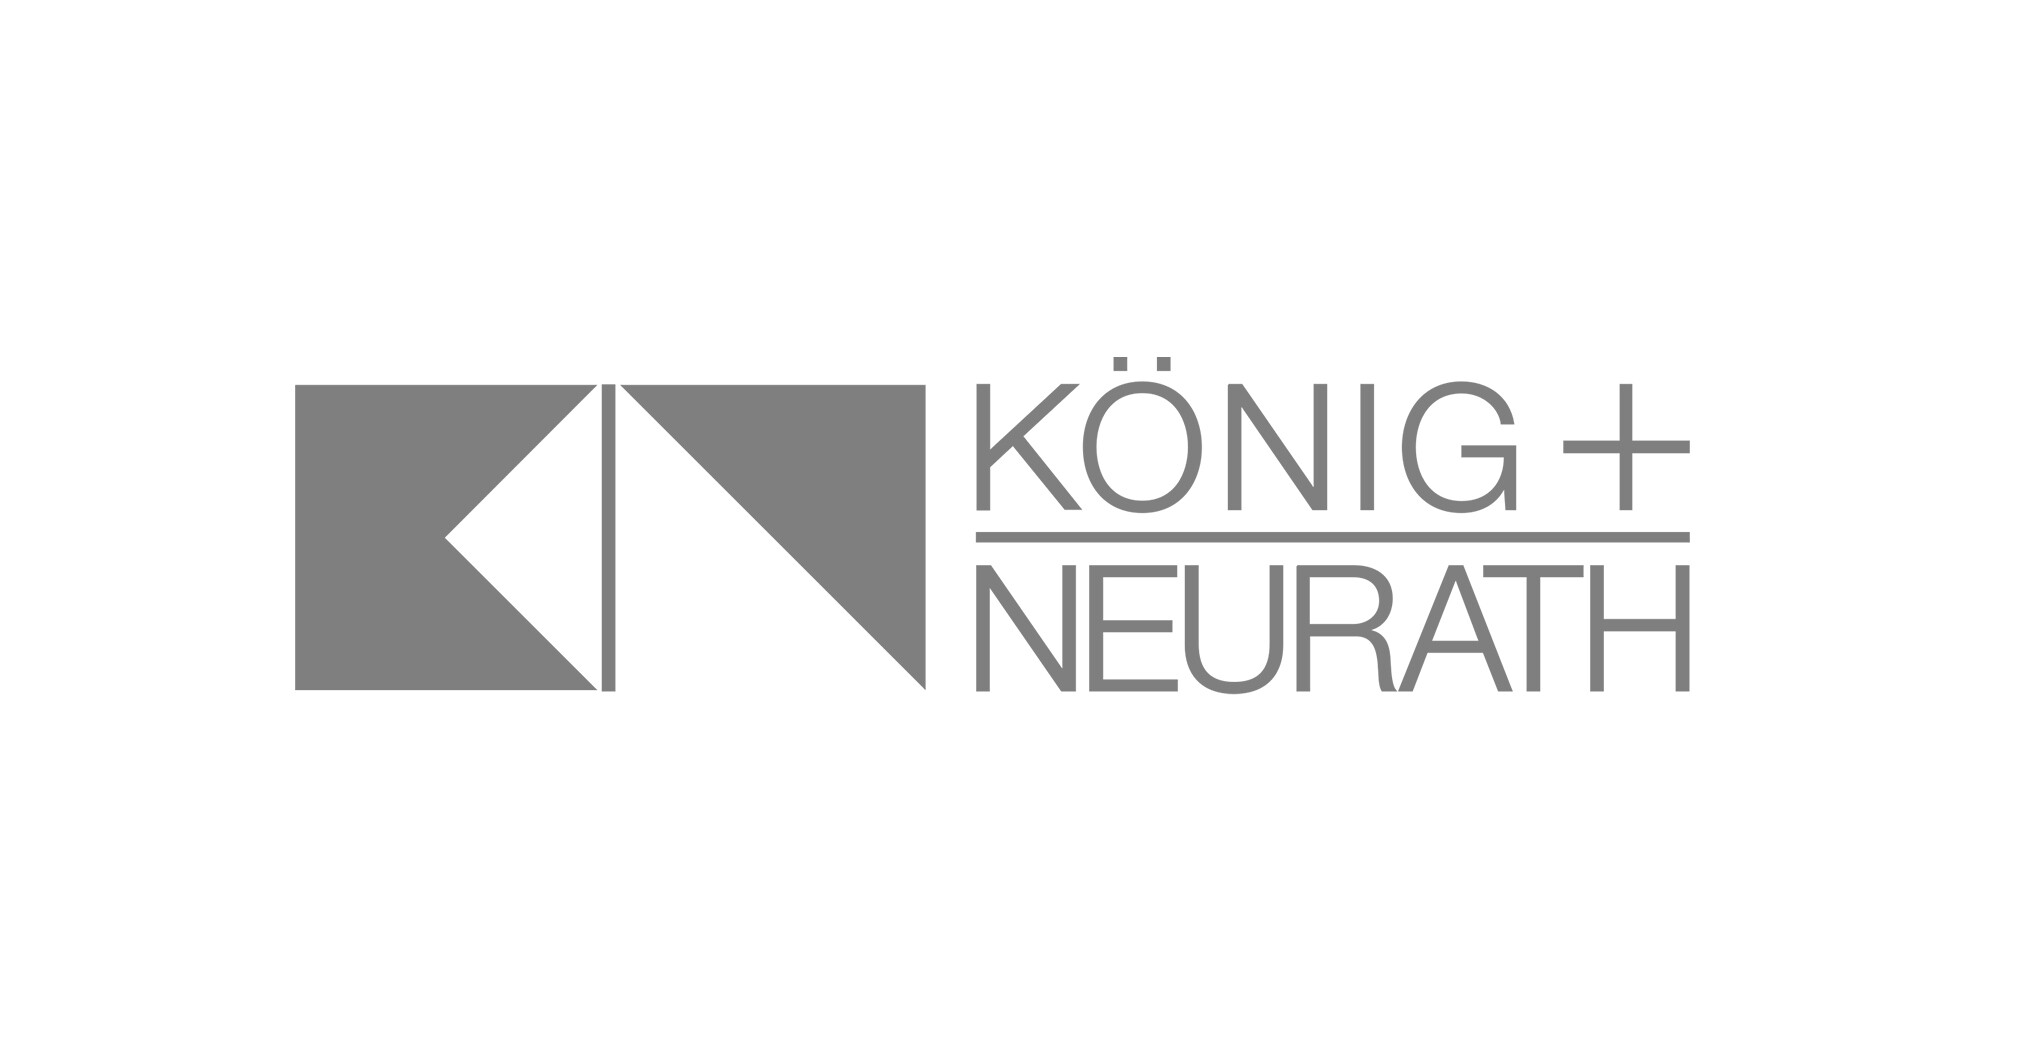 Logo König + Neurath office furniture